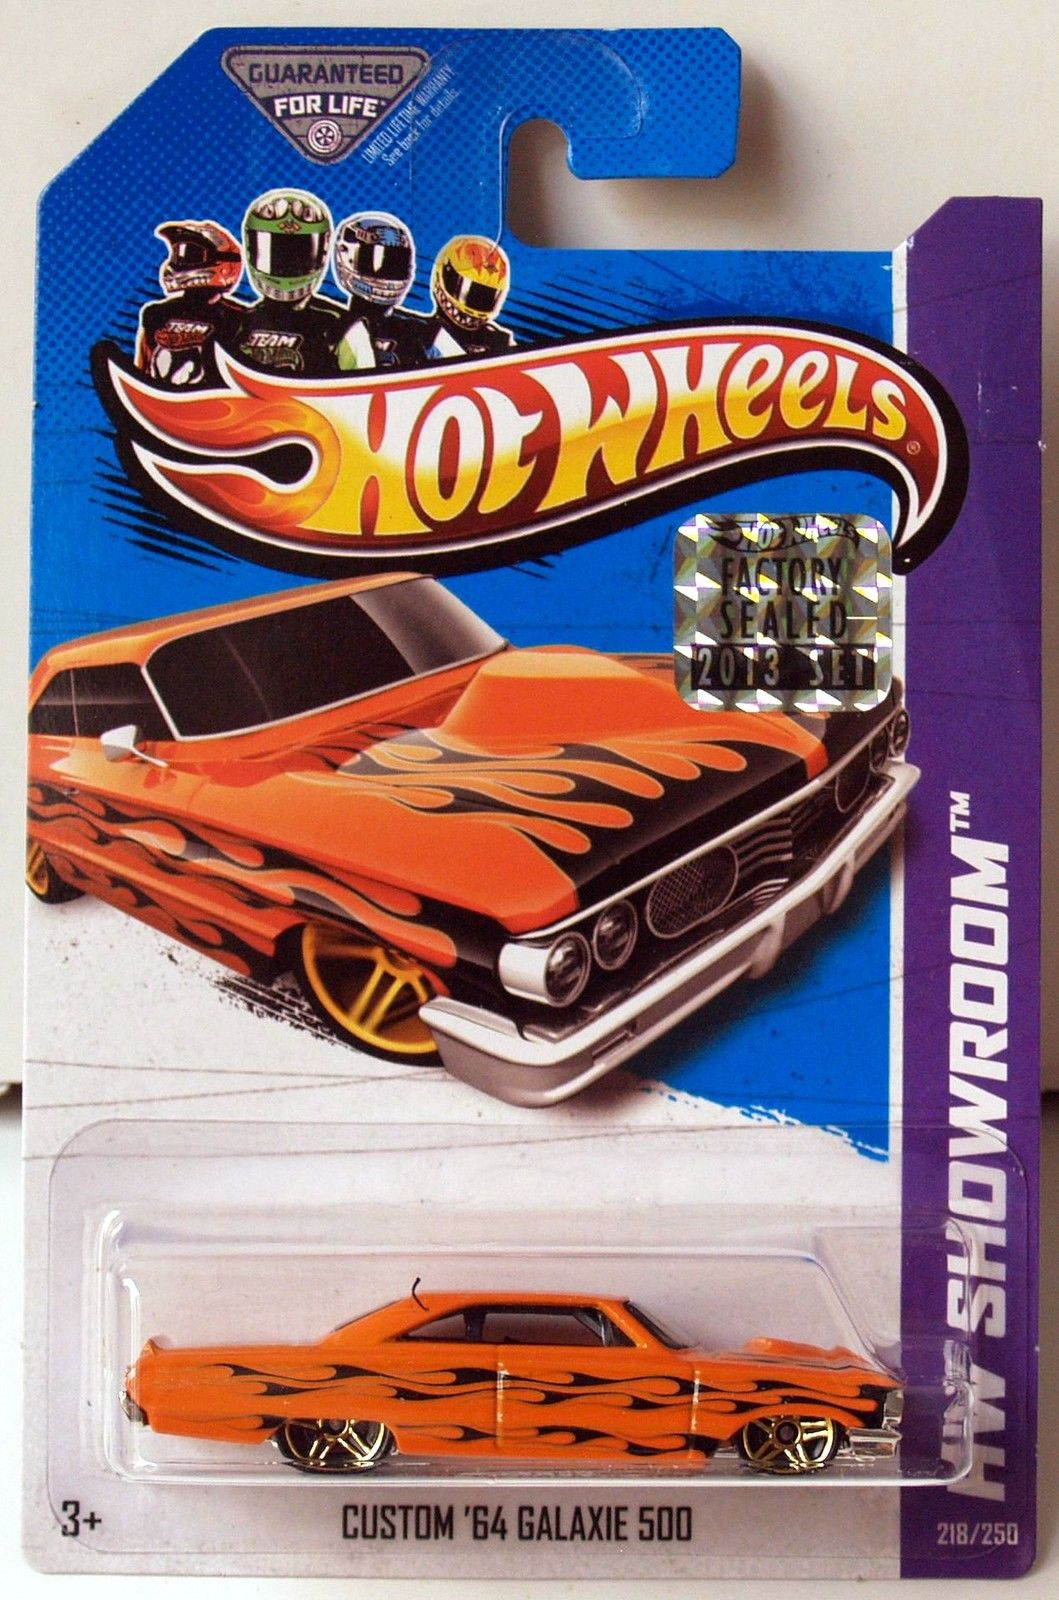 HOT WHEELS 2013 HW SHOWROOM - HEAT FLEET CUSTOM '64 GALAXIE 500 FACTORY SEALED